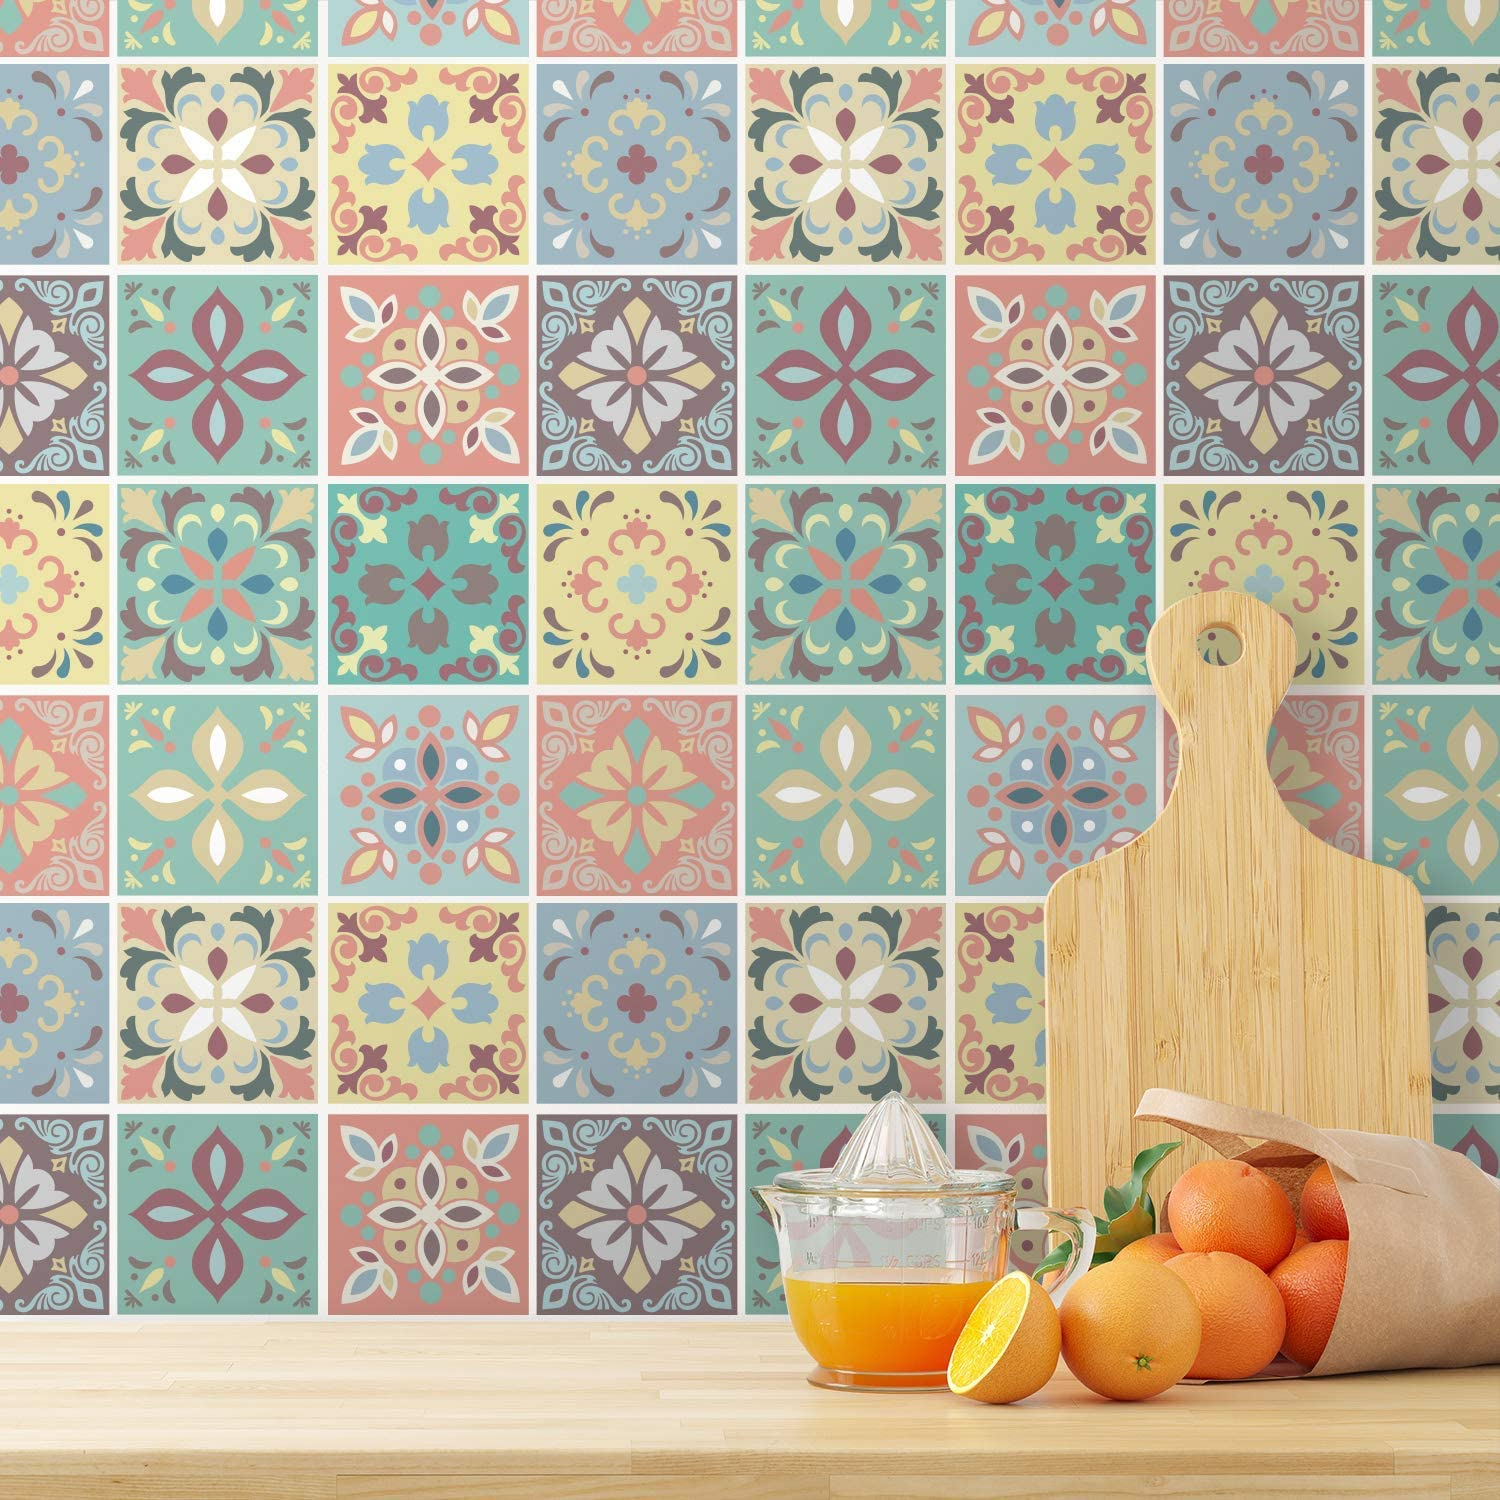 24pcs 6 inch Peel and Stick Tiles Stickers Tile Paint Backsplash Removable Waterproof Self-Adhesive Decals Vinyl Home Kitchen Bathroom Decor (Marbella Colourful - WT1558)